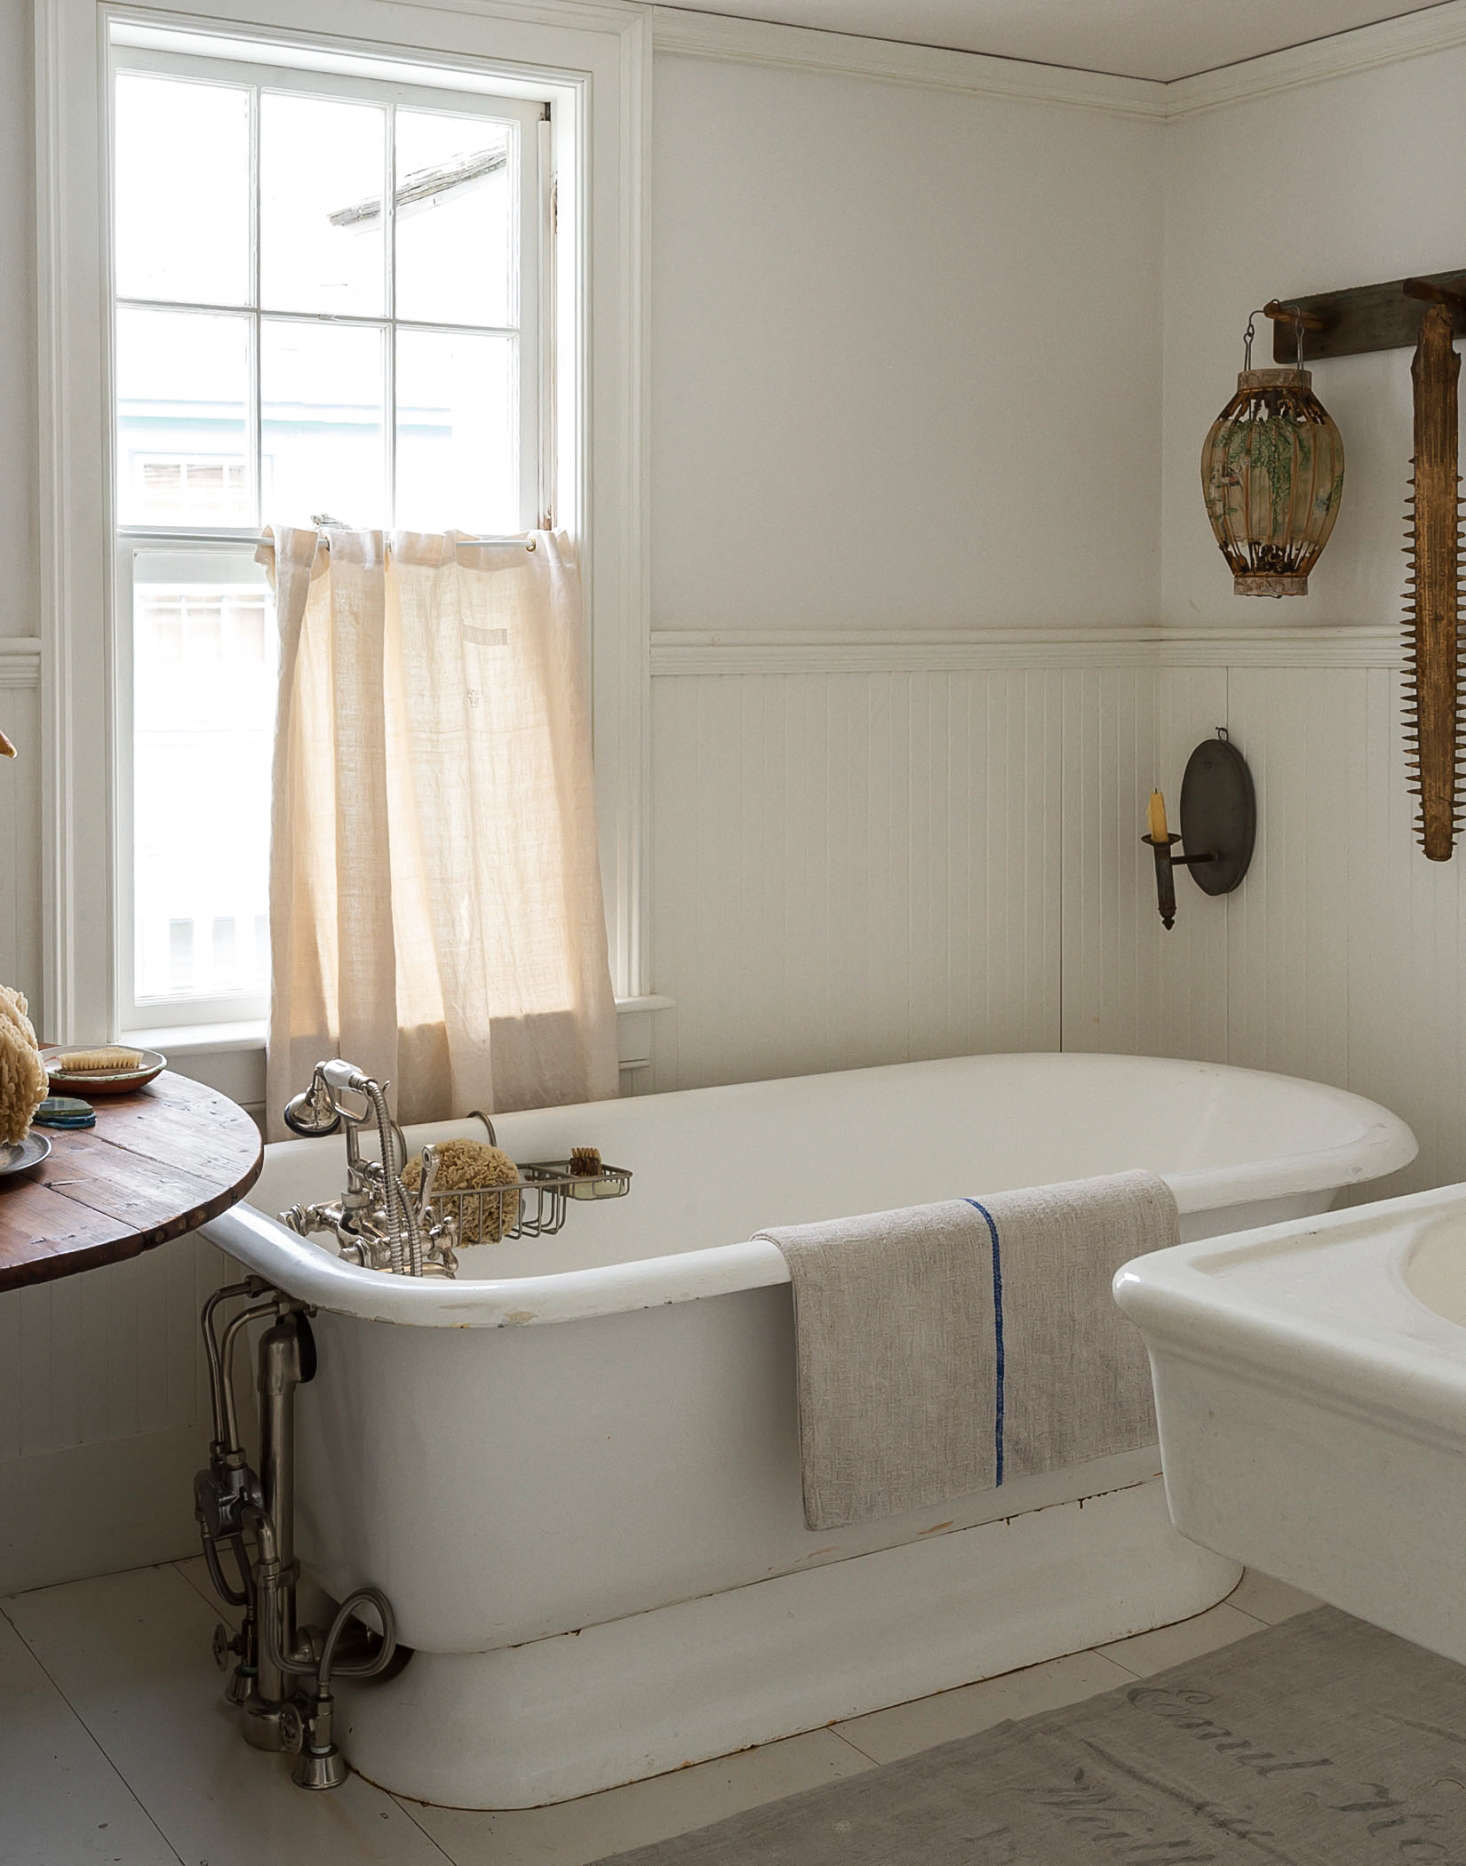 Remodeling 101 Romance In The Bath Built In Vs Freestanding Bathtubs Remodelista